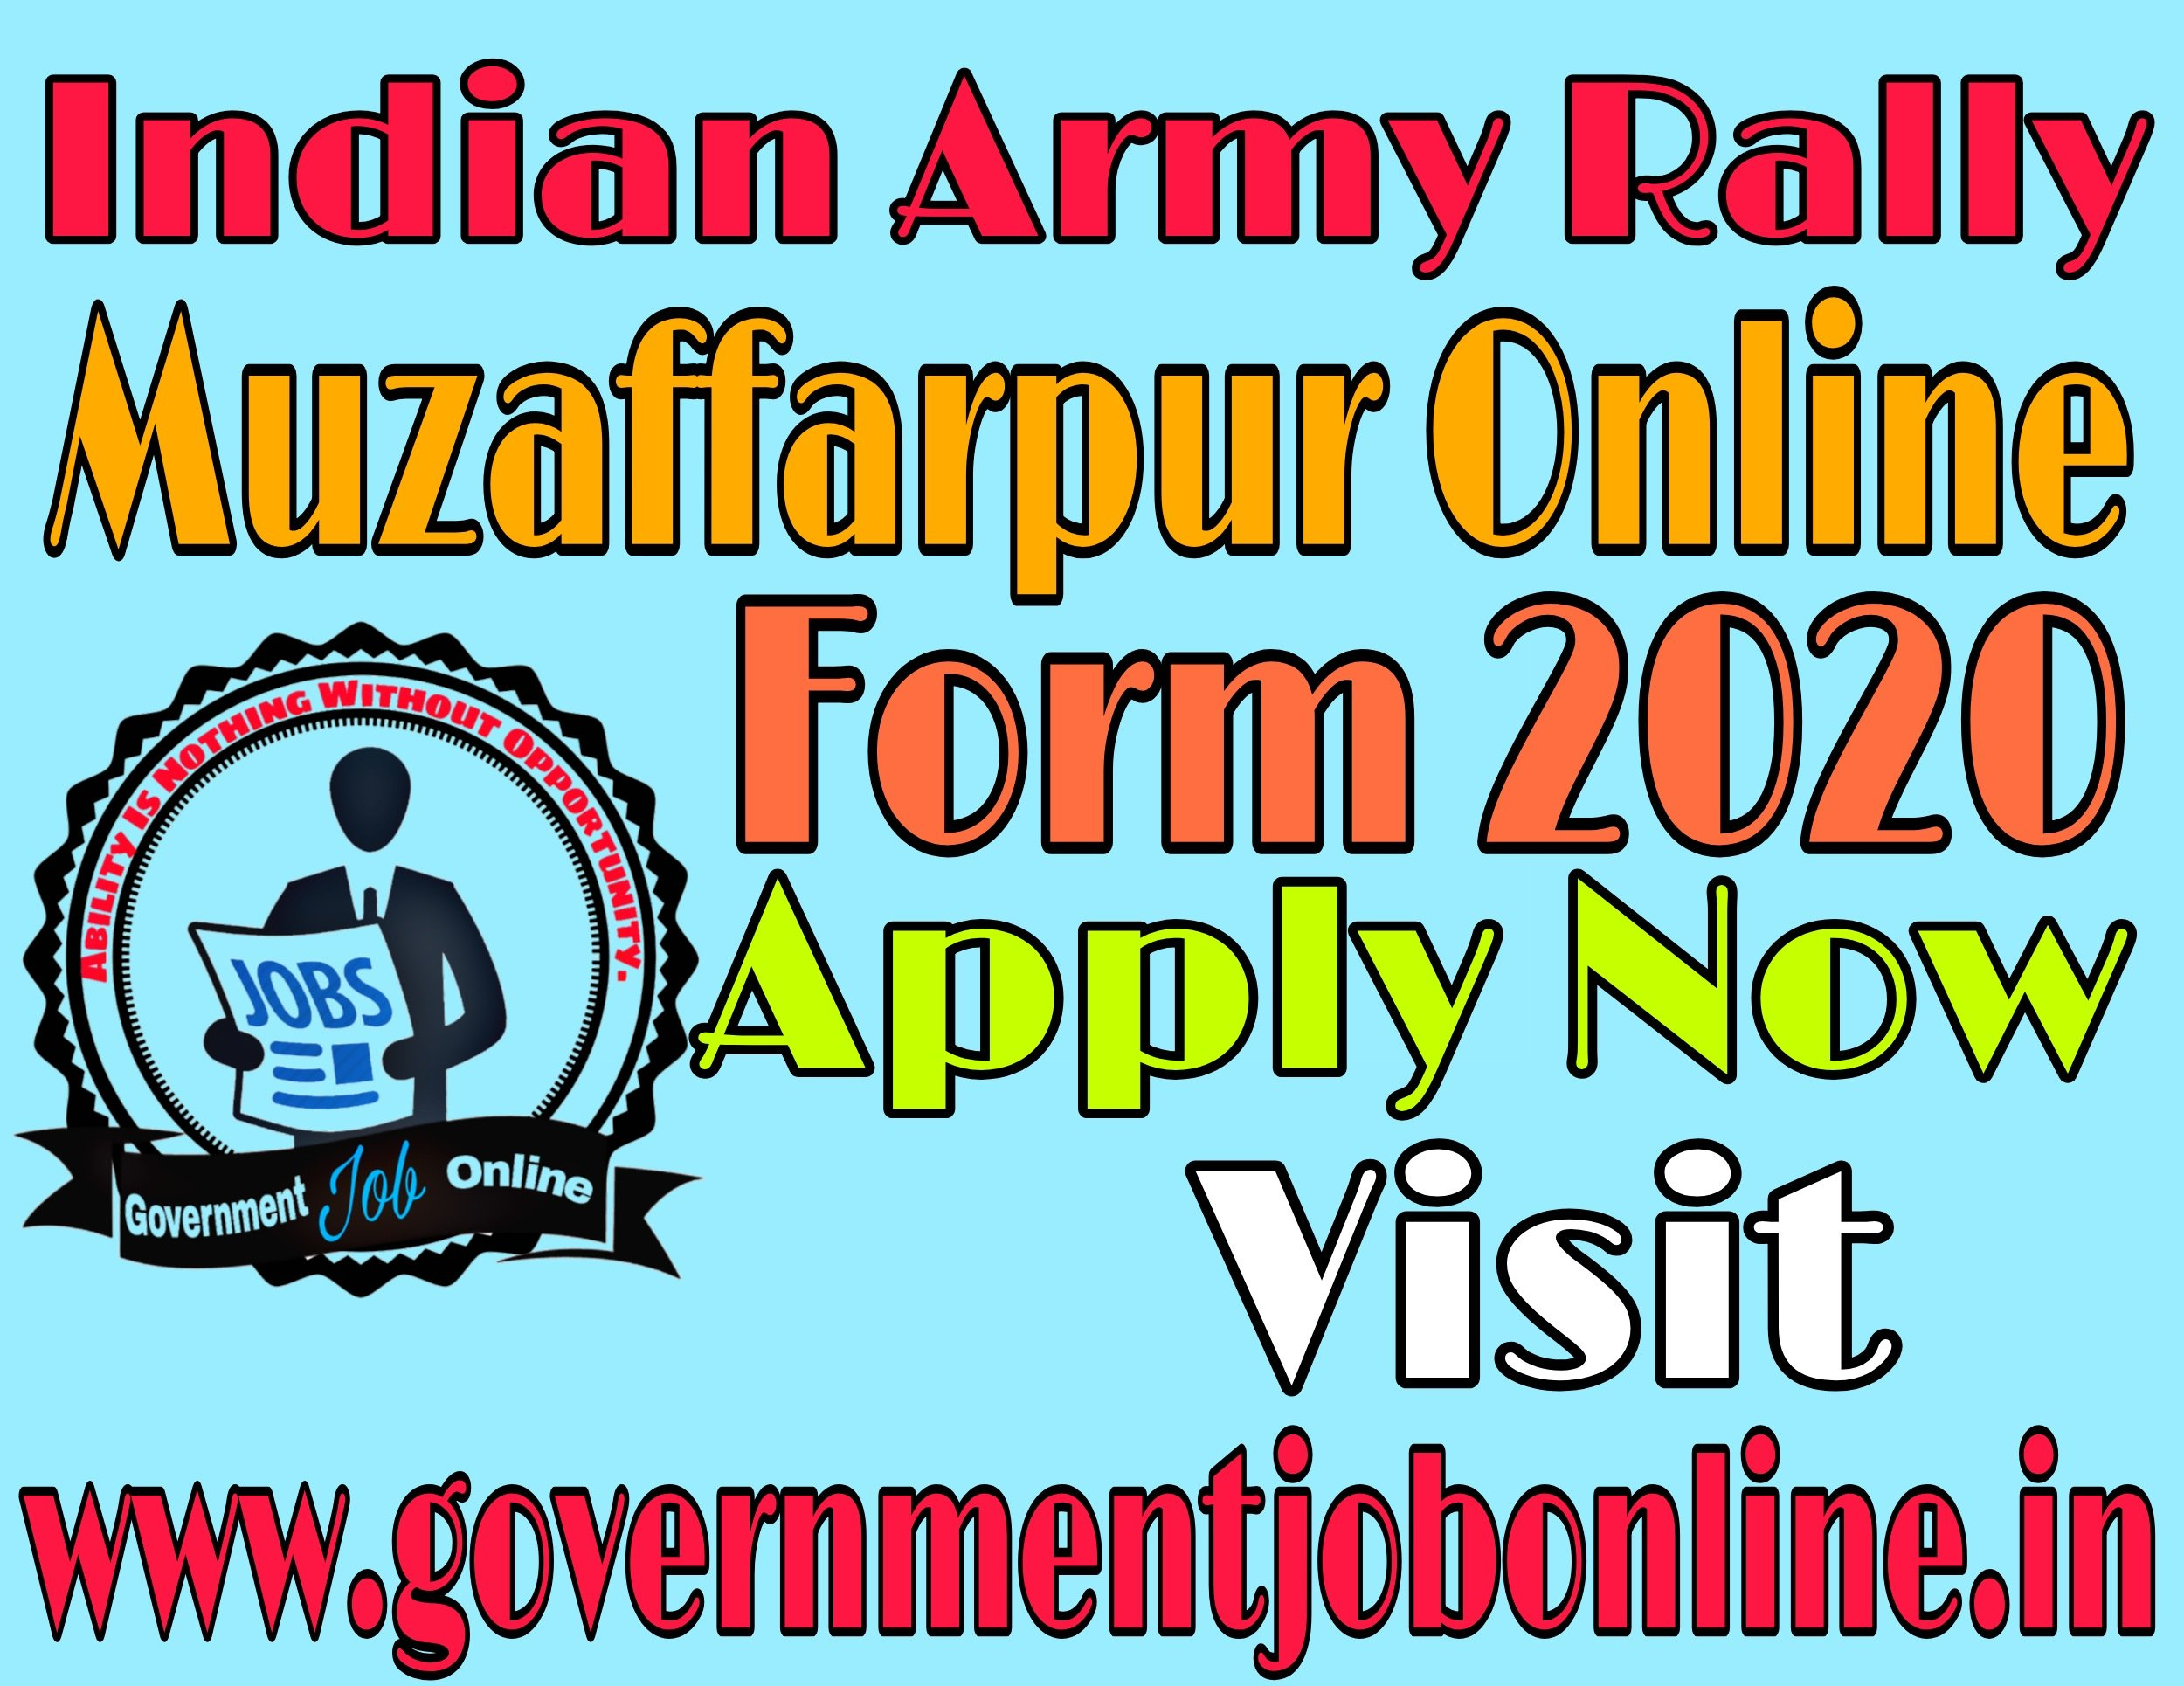 Indian Army Rally Muzaffarpur, Gaya, Kahitar Online Form 2020